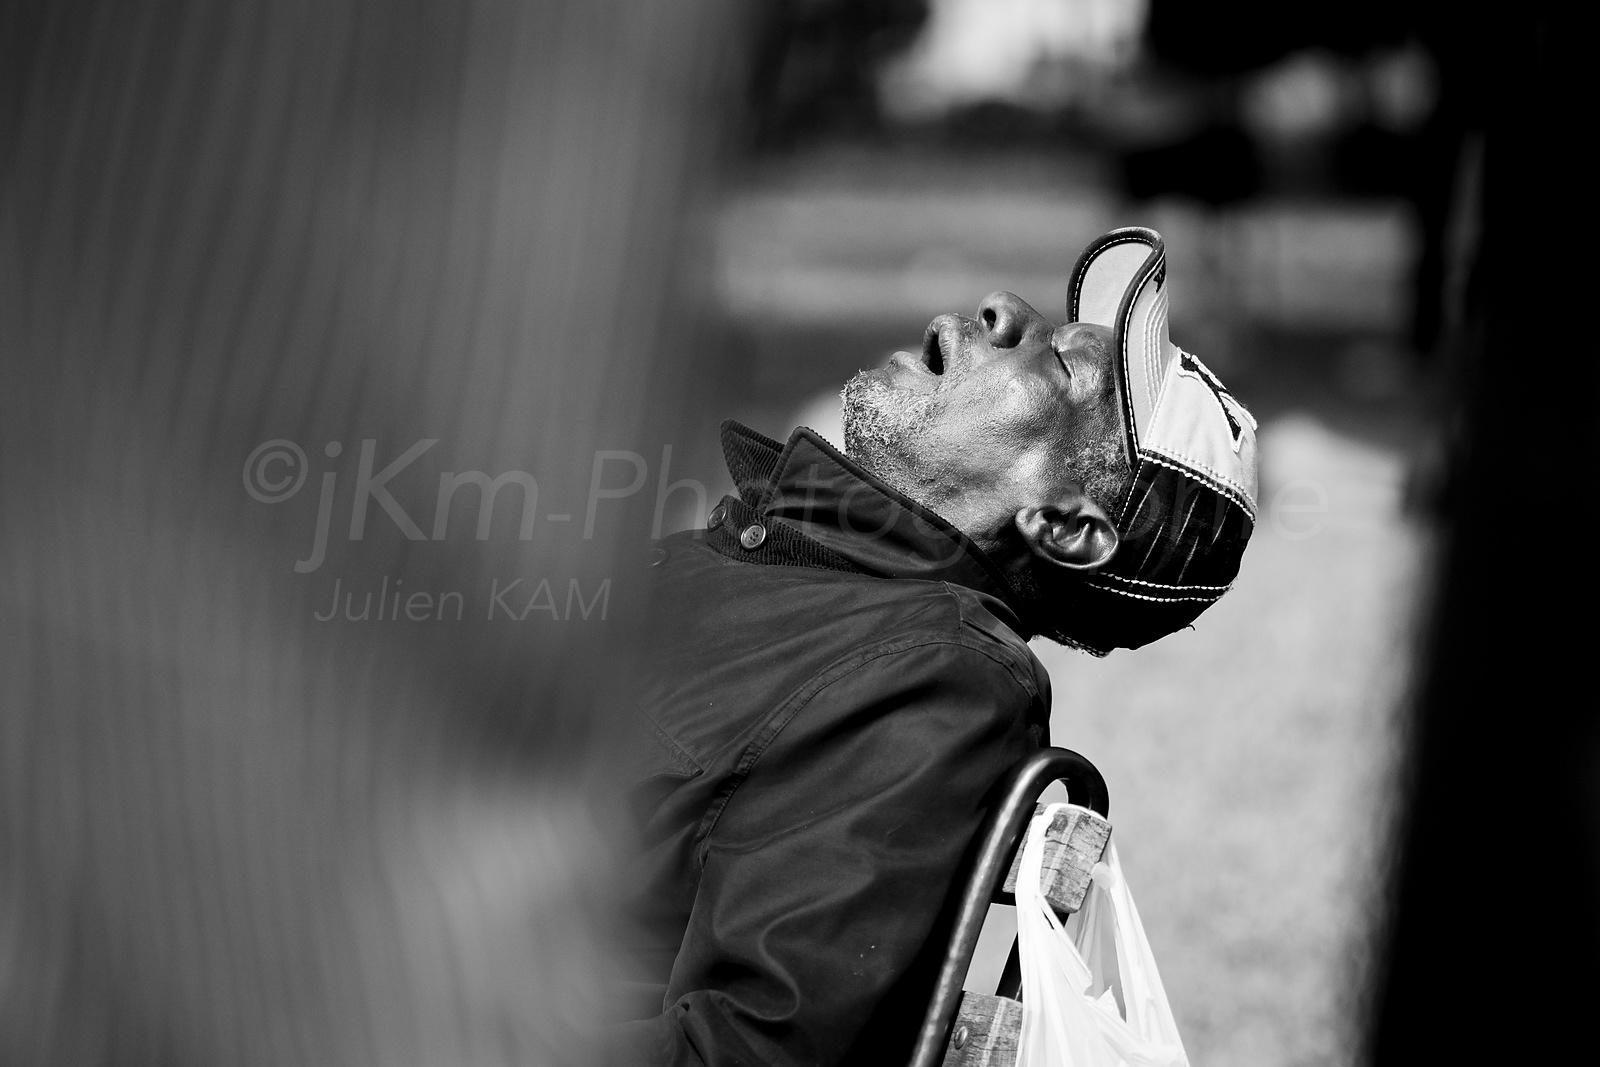 Street Photo - Tiredness